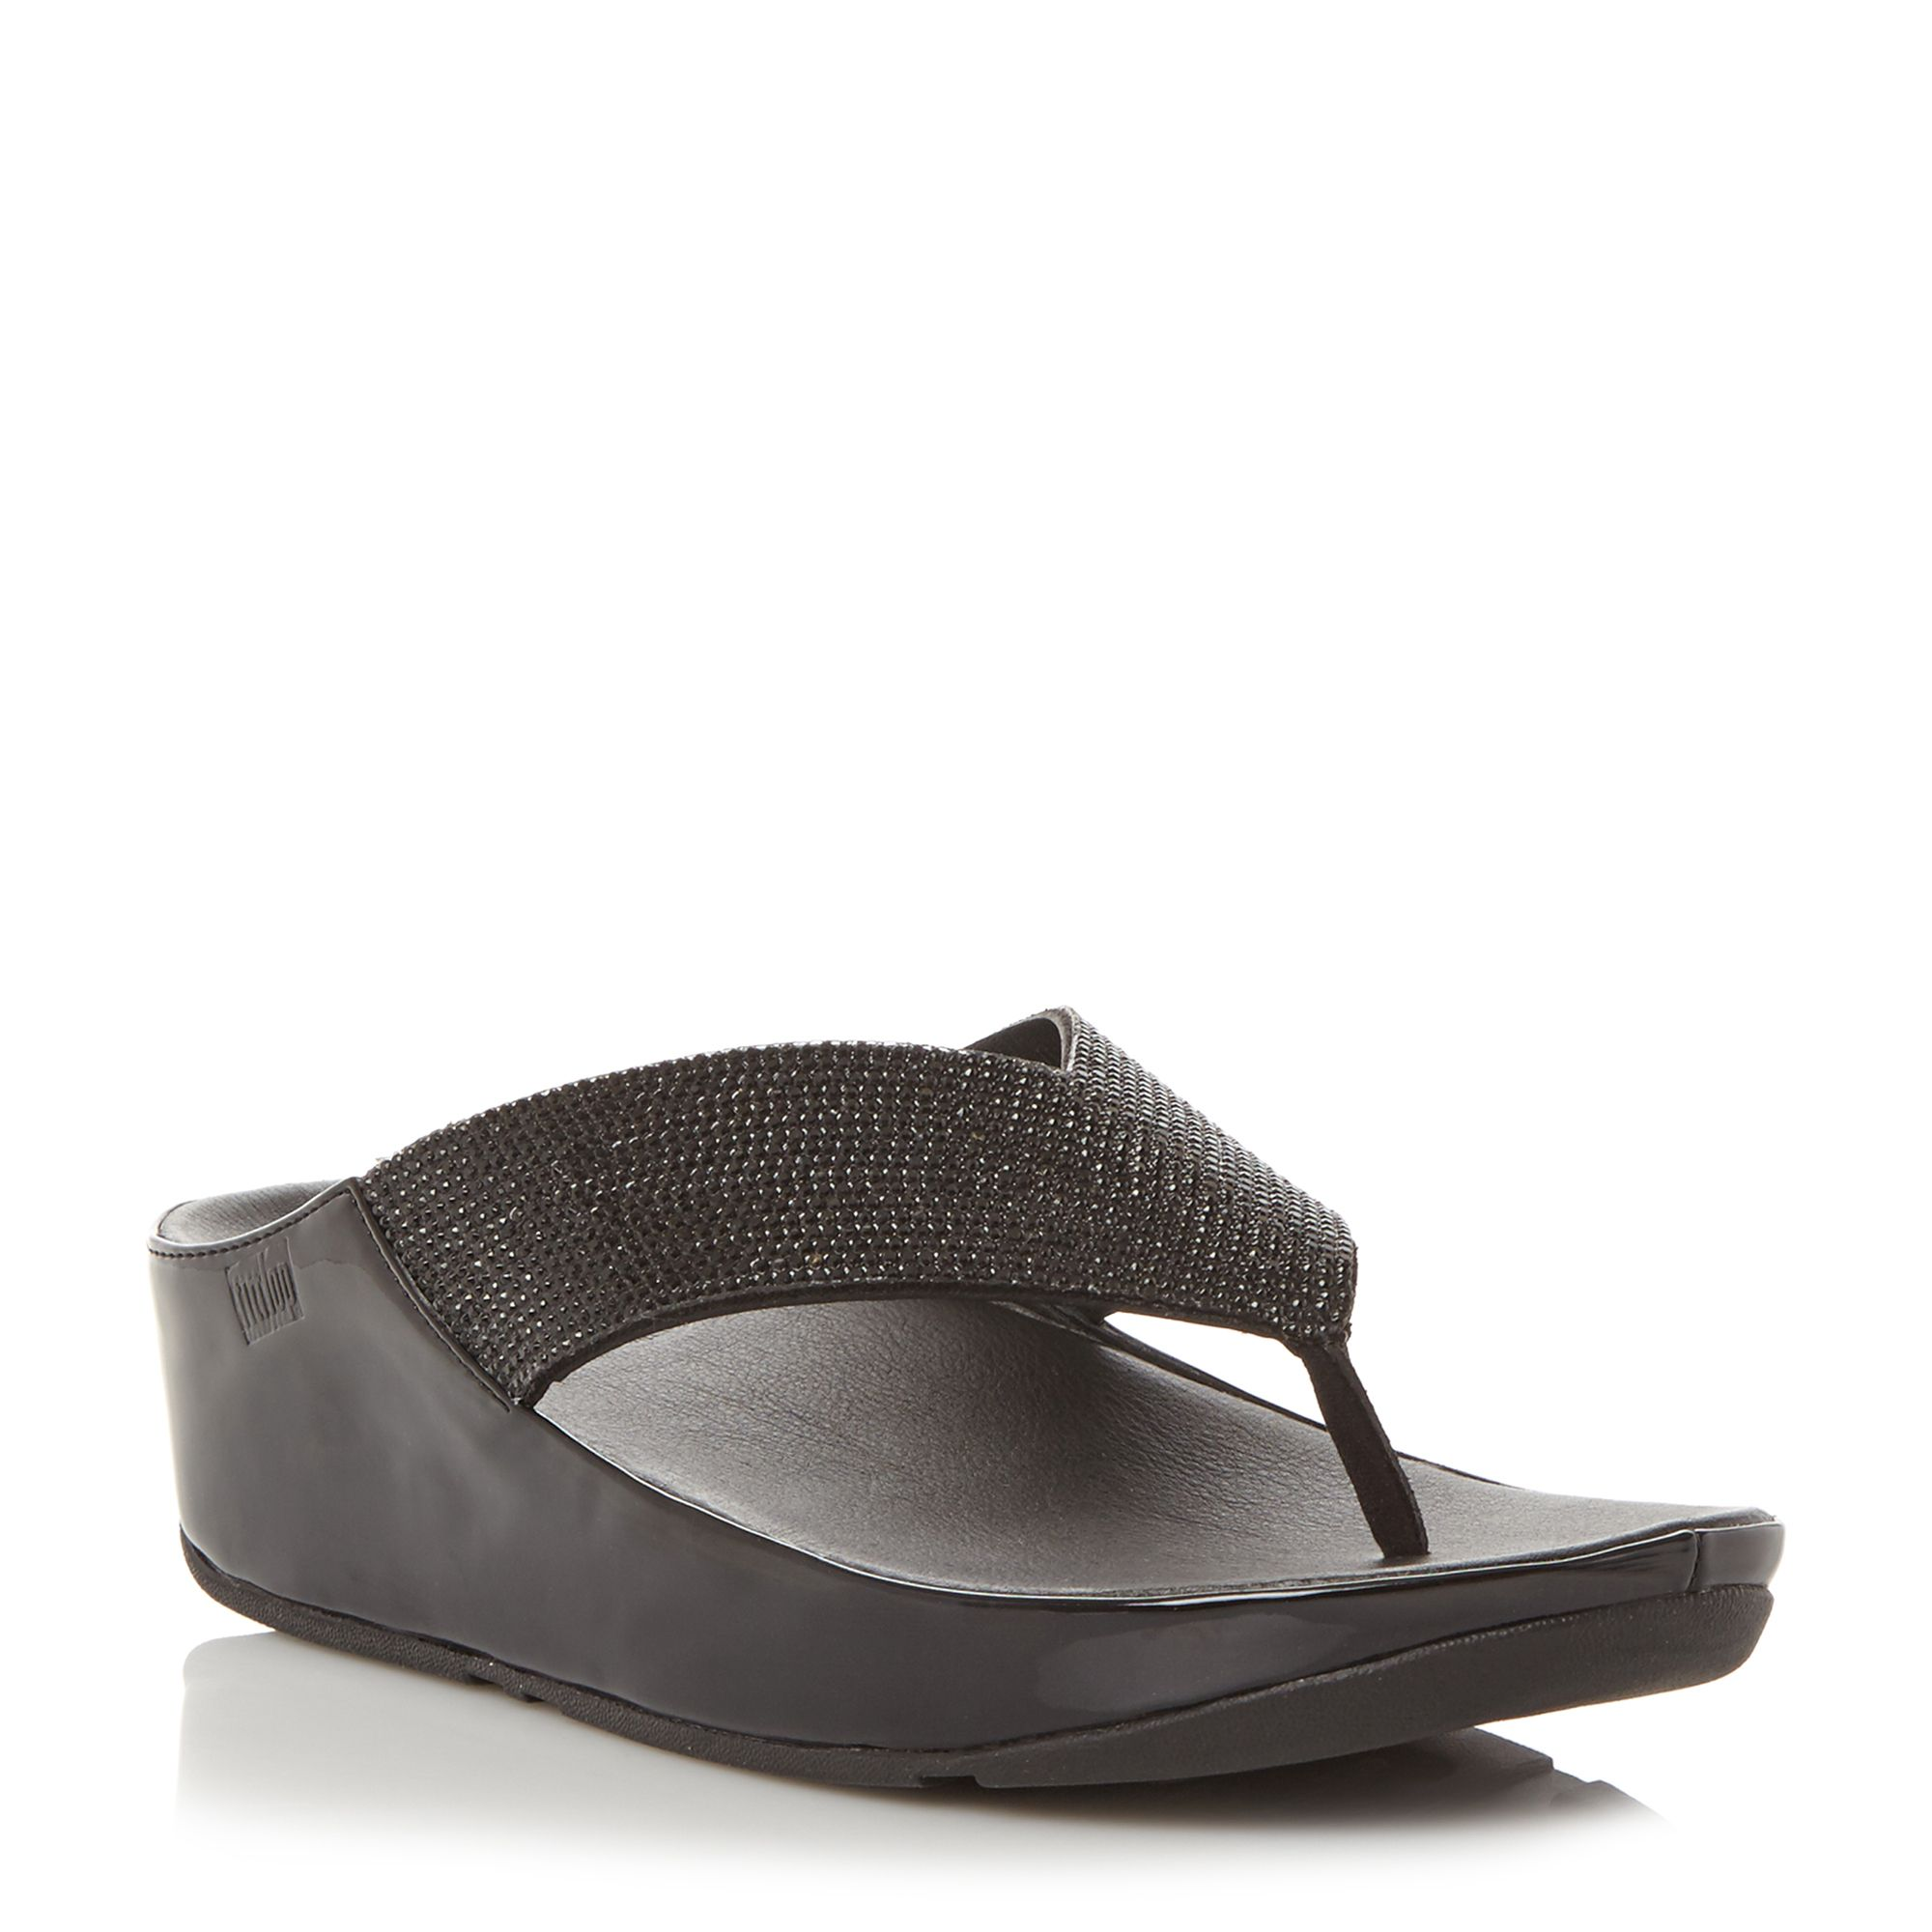 FitFlop Crystall Toepost Sandals, Black